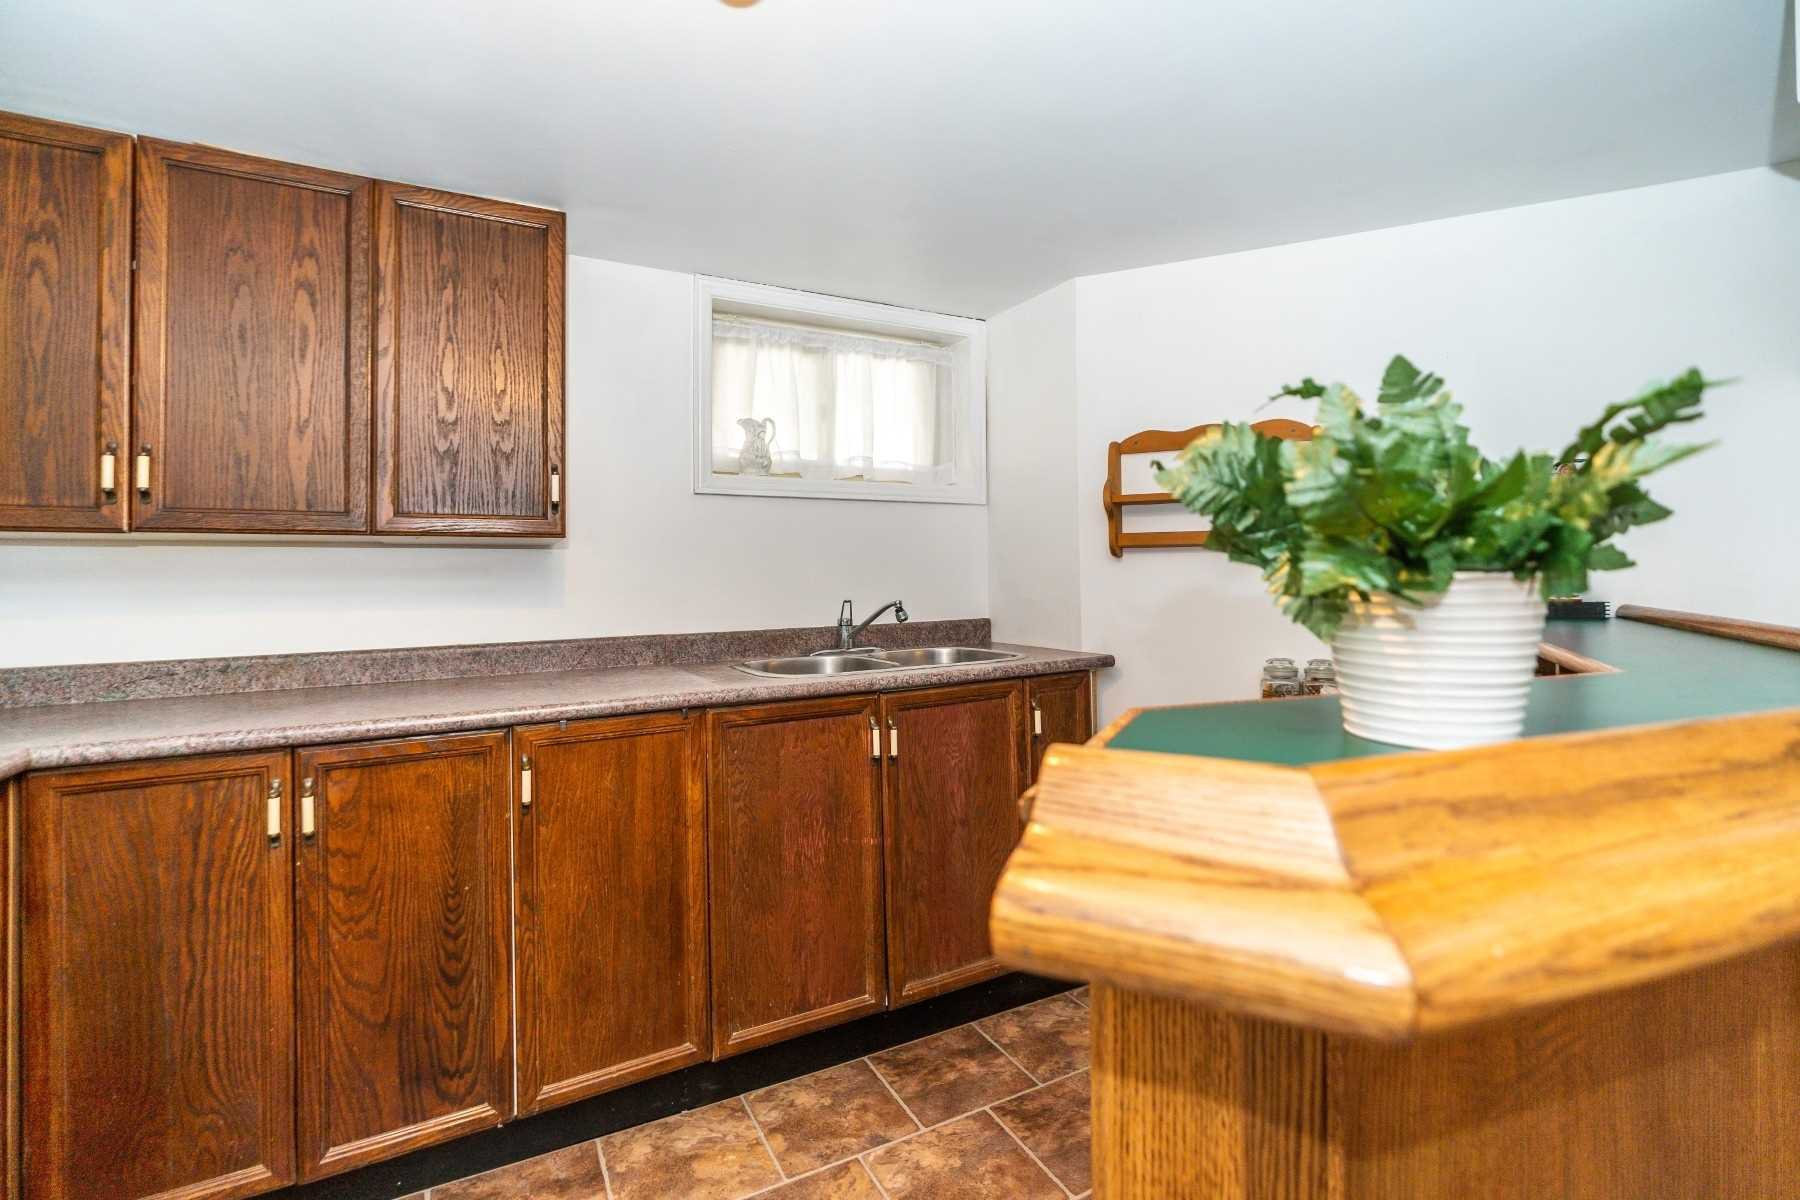 Photo 23: Photos: 40 Eastlawn Street in Oshawa: Donevan House (Bungalow) for sale : MLS®# E4769026